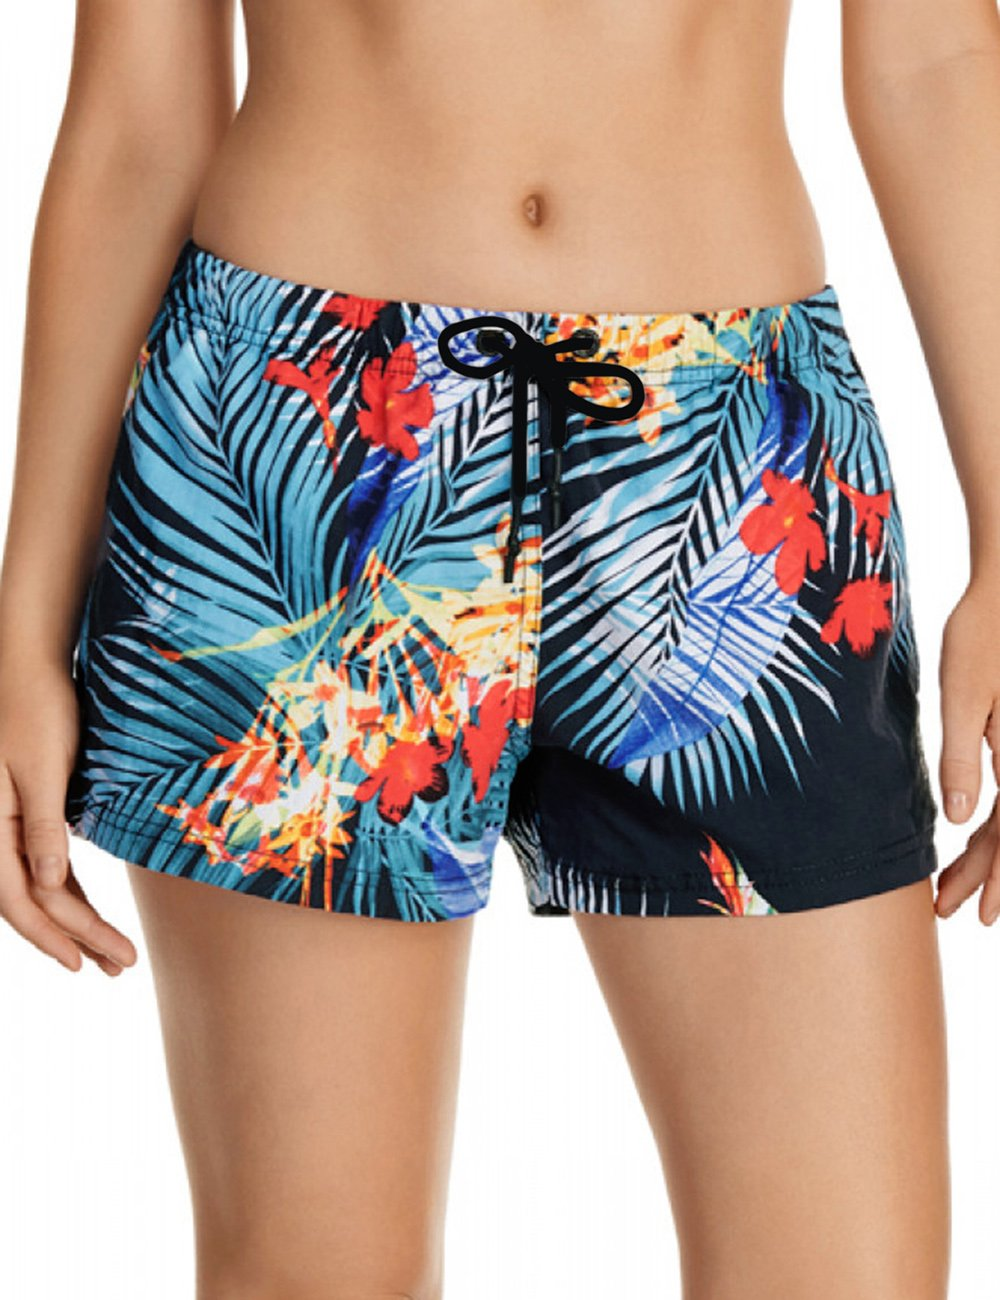 Utyful Women's Casual Quick Dry Drawstring Printed Swimsuit Beach Board Shorts Size Large (Fit US 12 - US 14)